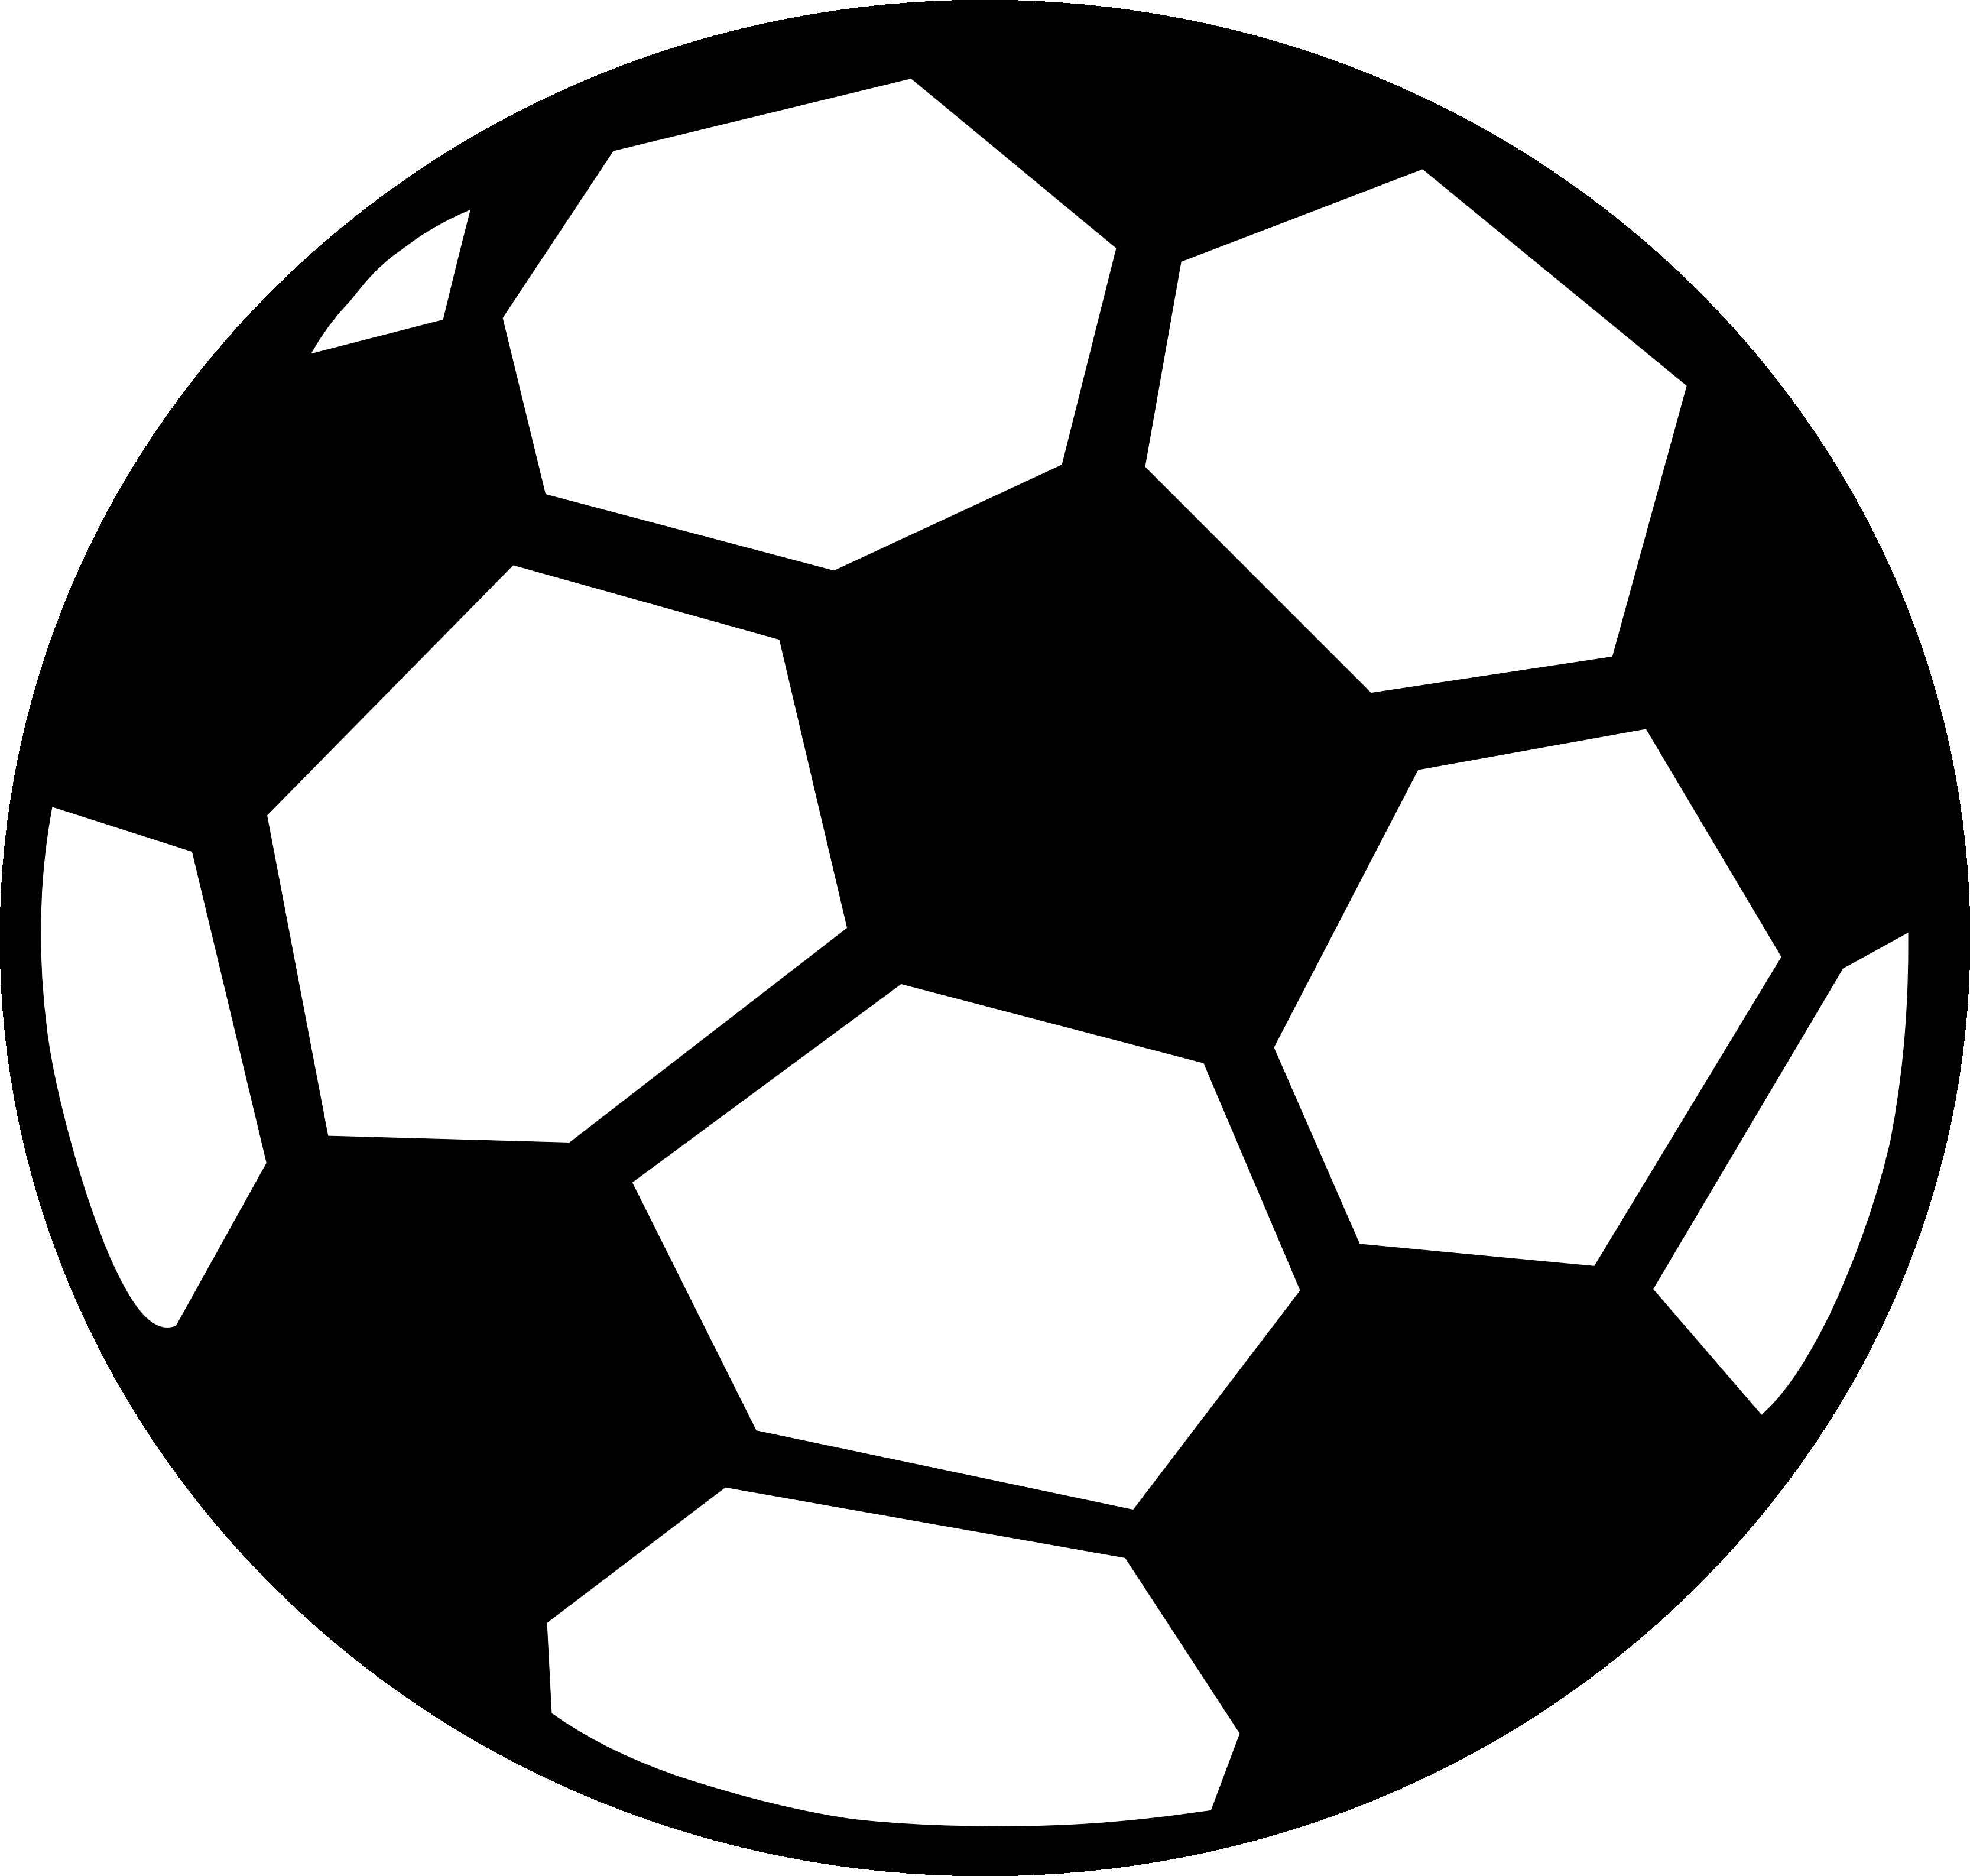 Black And White Football Images